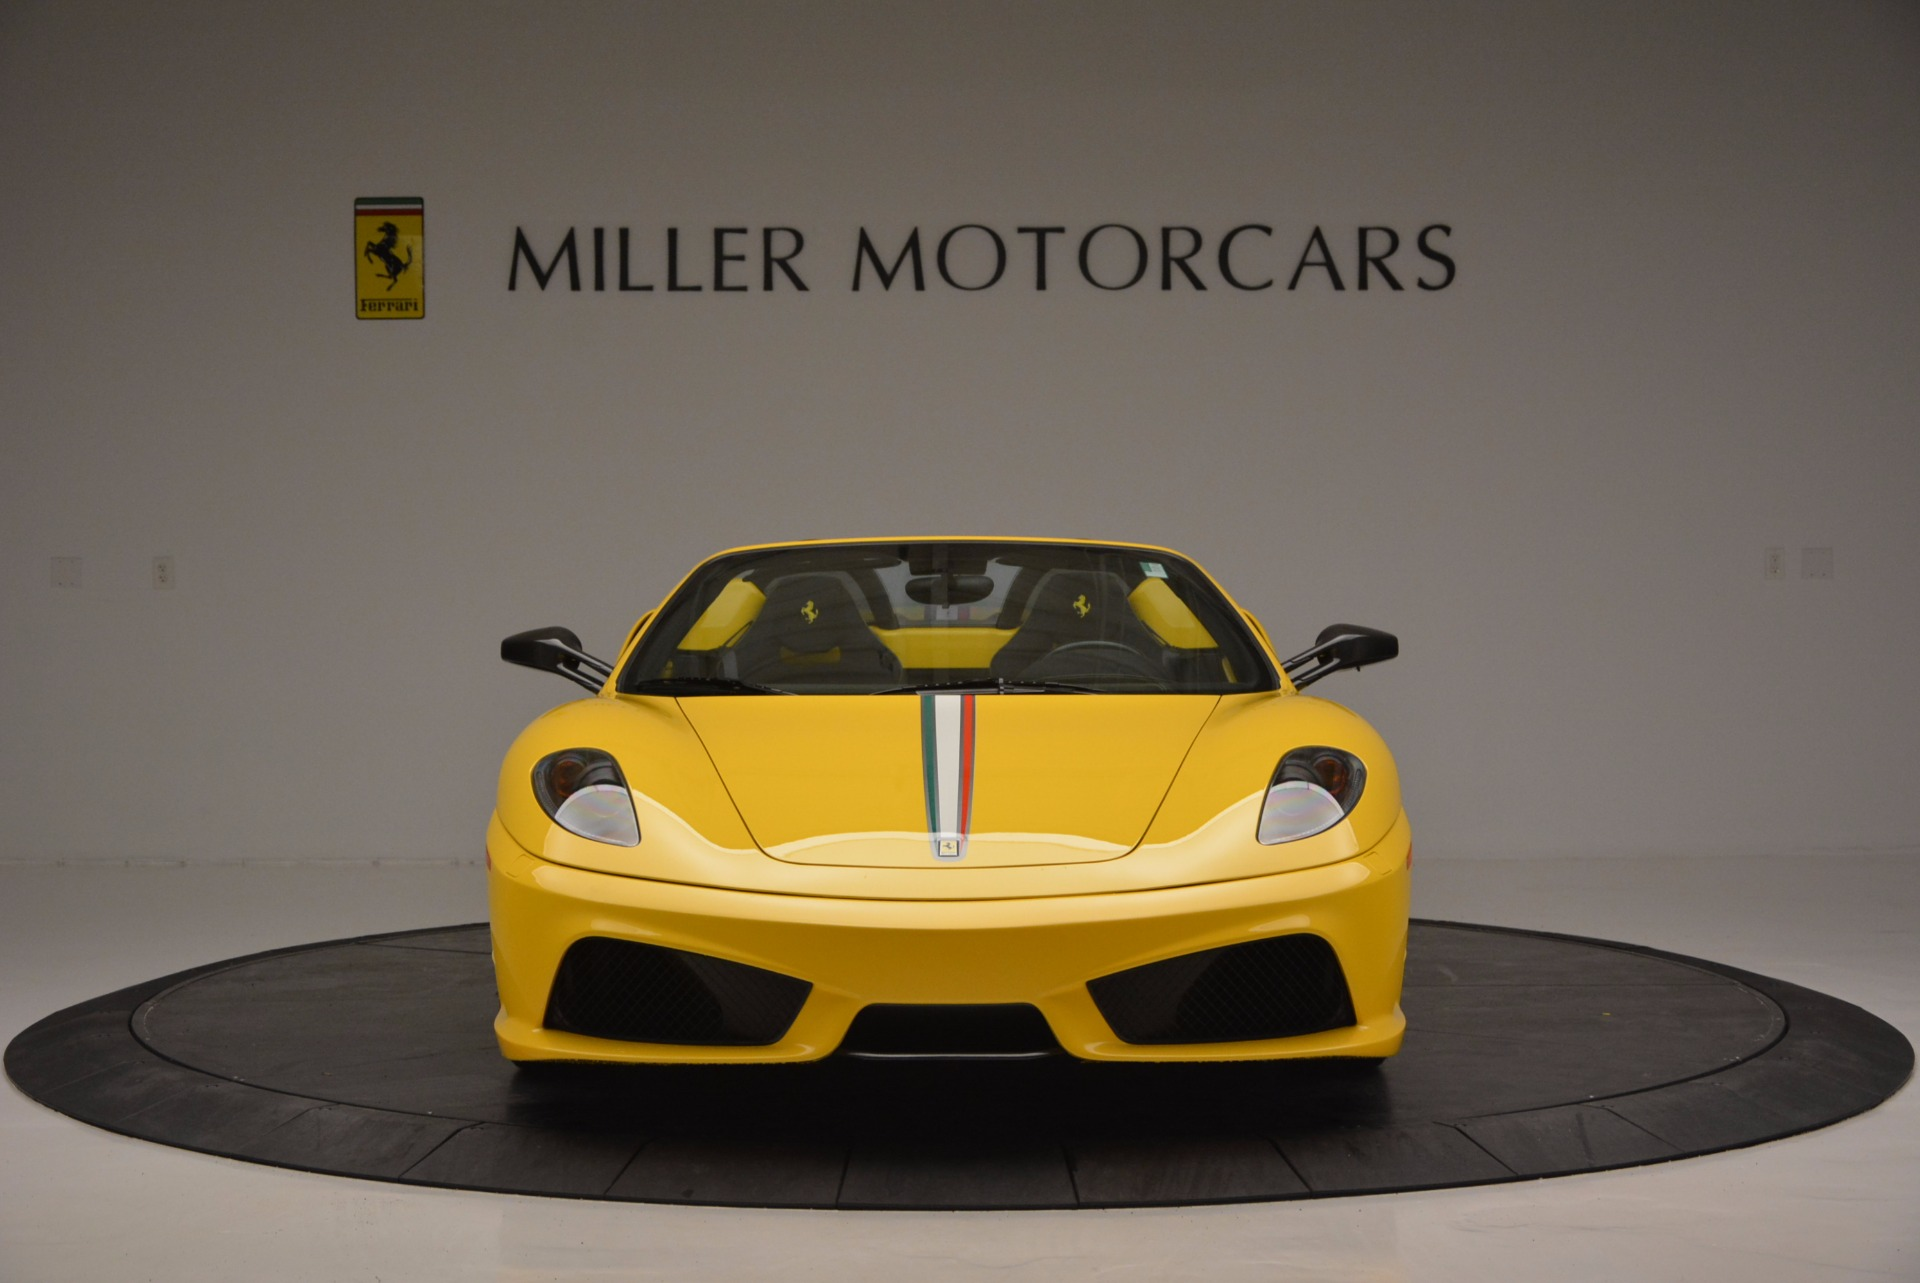 Used 2009 Ferrari F430 Scuderia 16M For Sale In Greenwich, CT 856_p12